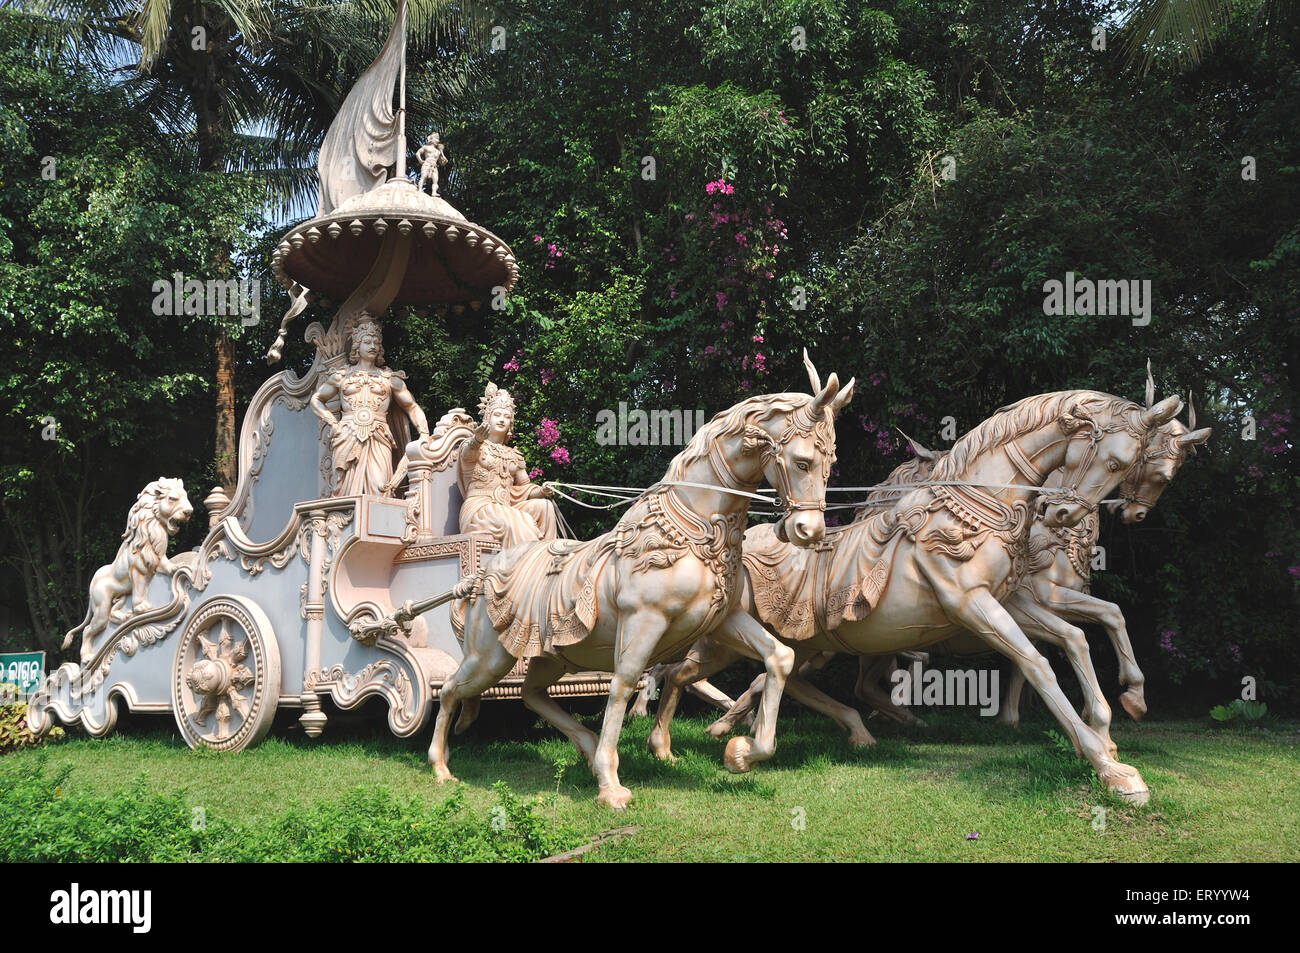 Lord Krishna and arjuna in chariot ; India - Stock Image